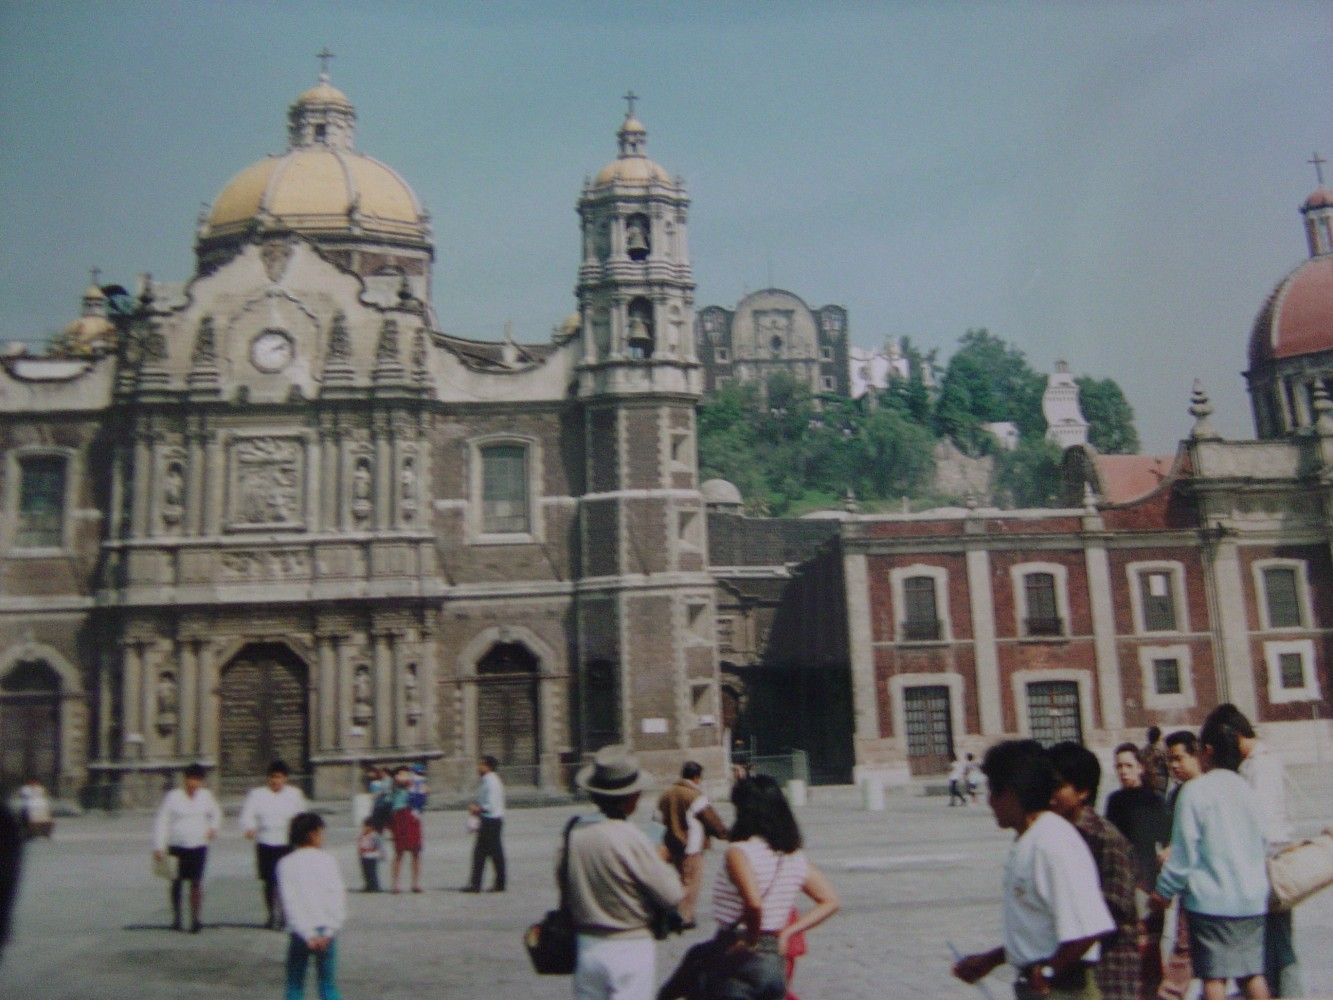 Best time to go to mexico city mexico for Vacation in mexico city